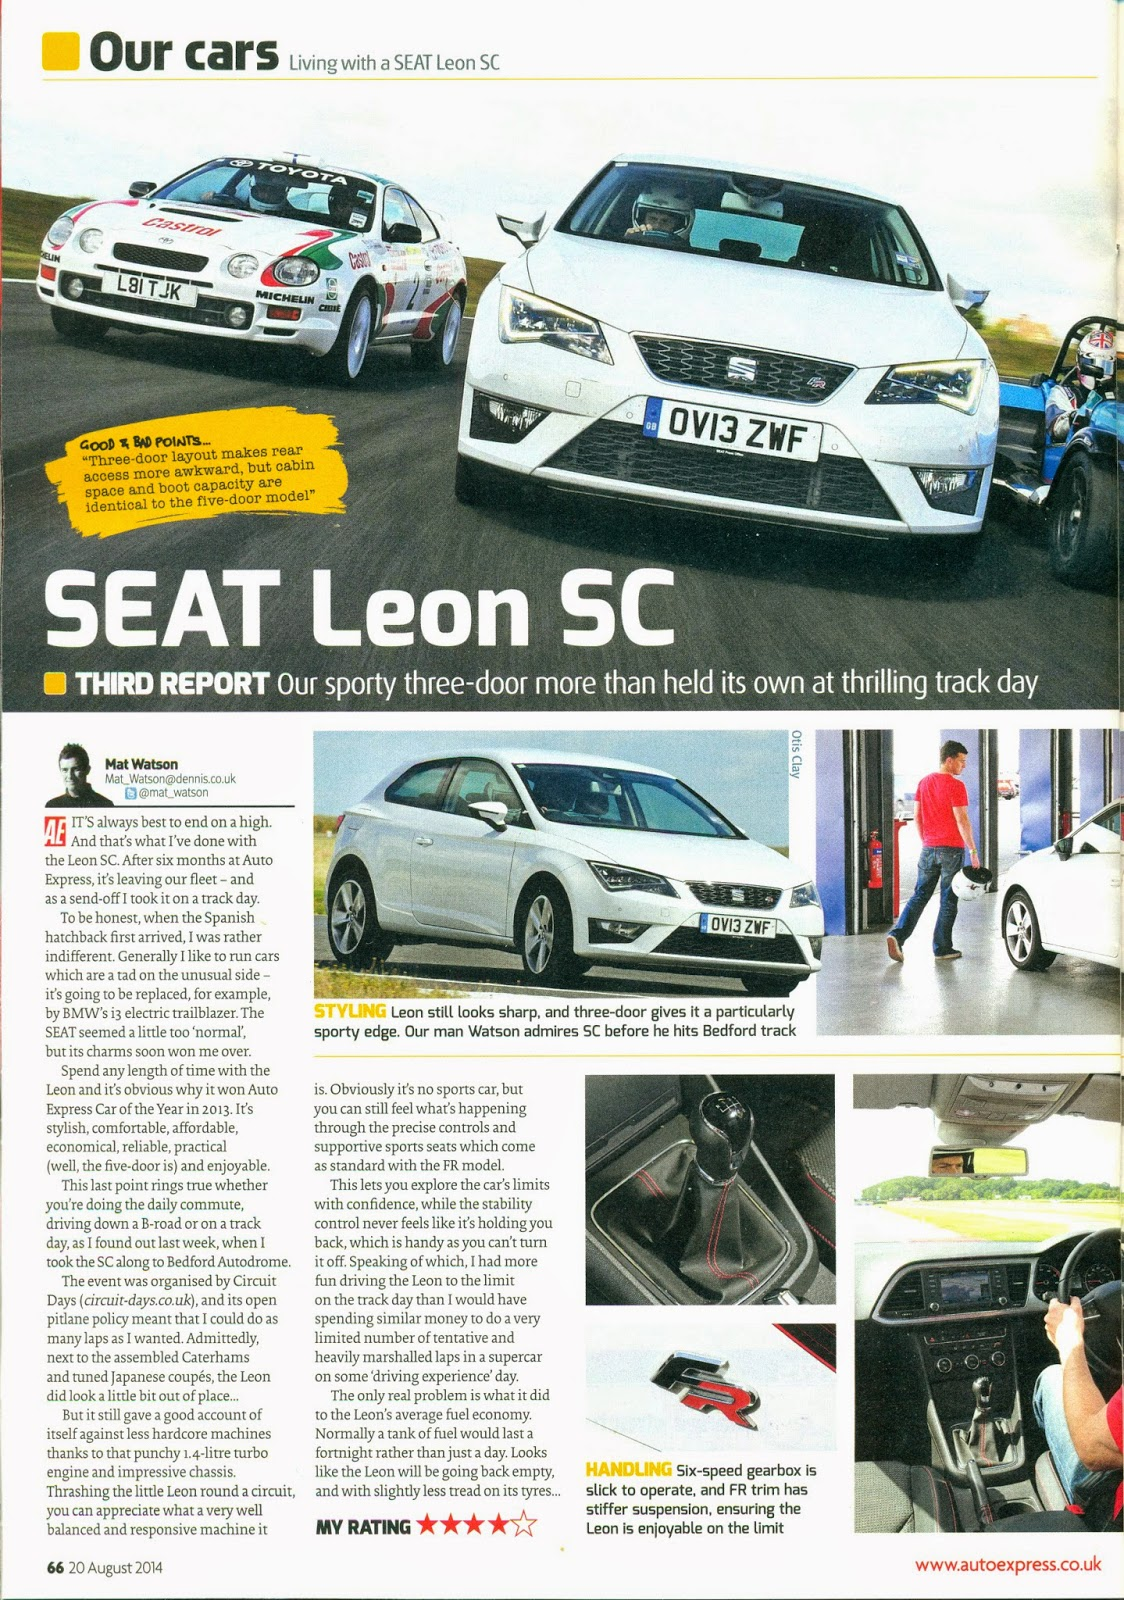 Seat Leon SC report in Auto Express magazine page 66 with my Caterham R500 pictured.